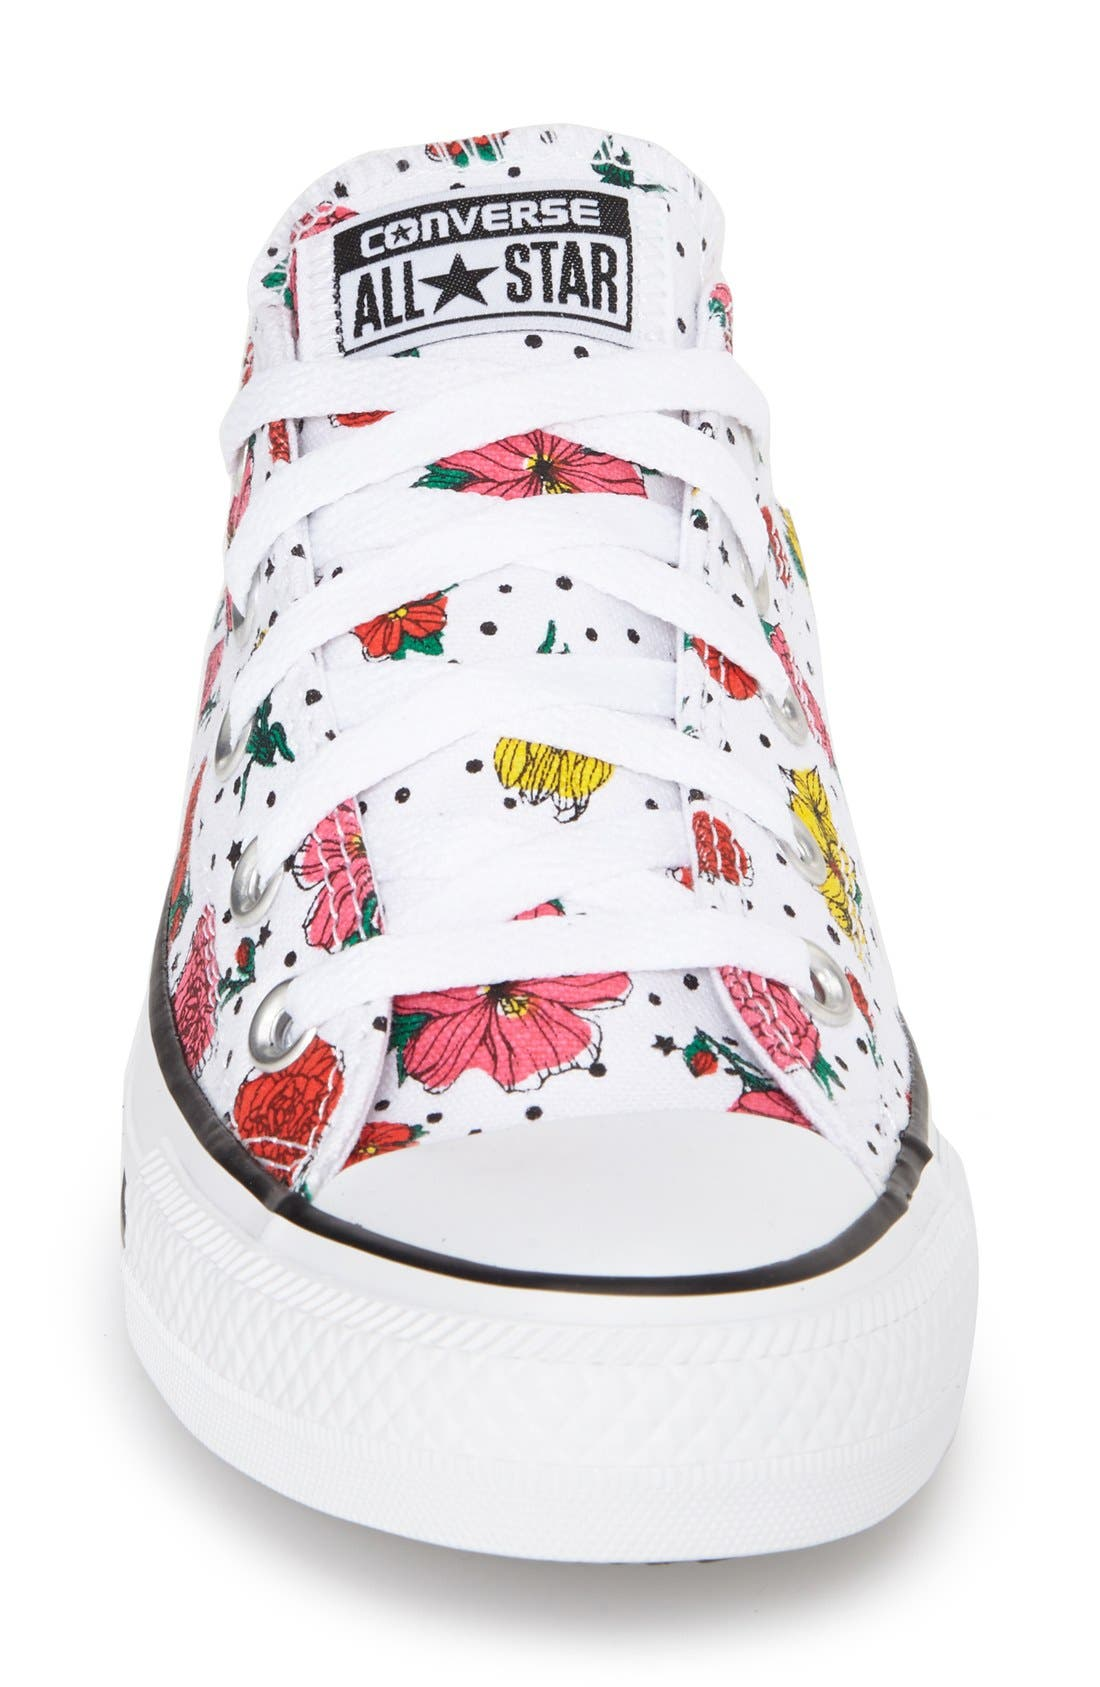 CONVERSE,                             Chuck Taylor<sup>®</sup> All Star<sup>®</sup> Floral Polka Dot Low Top Sneaker,                             Alternate thumbnail 2, color,                             007